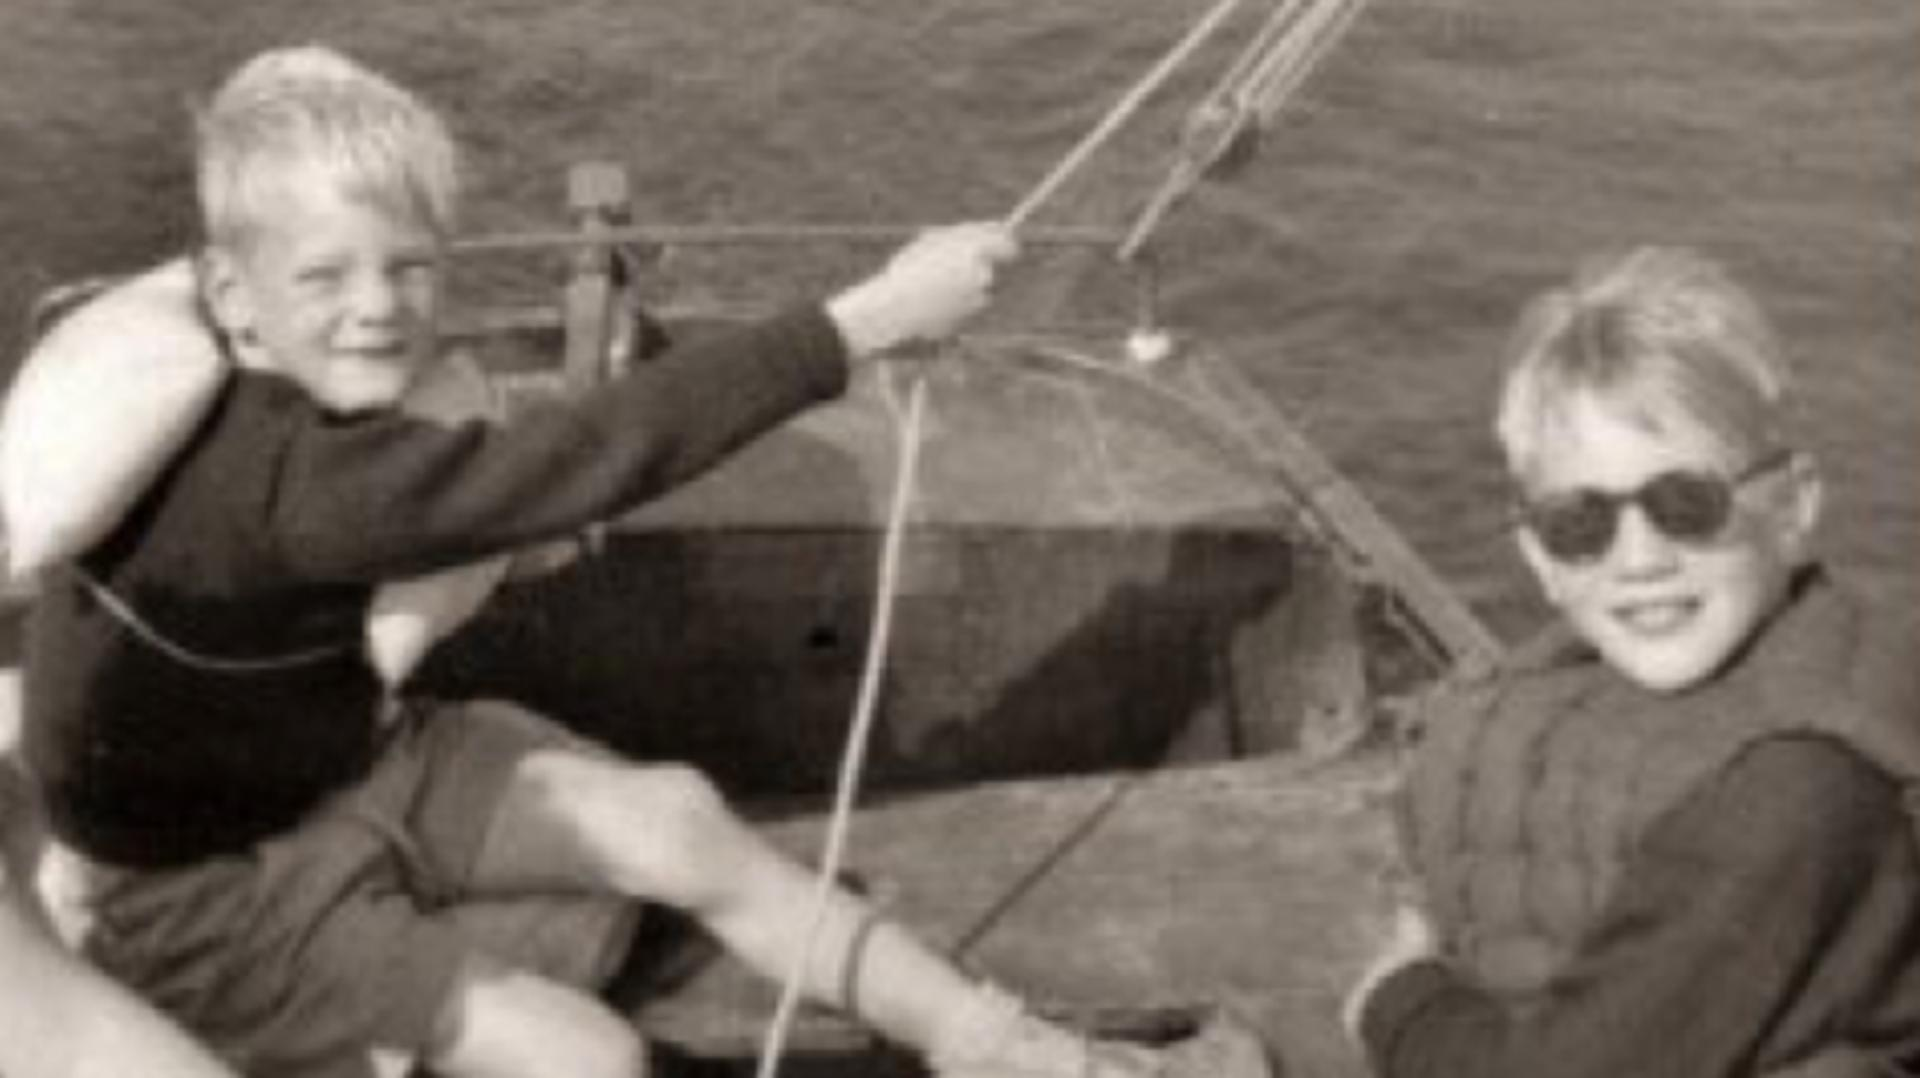 James Dyson and Tom Dyson sitting in a small sailing boat